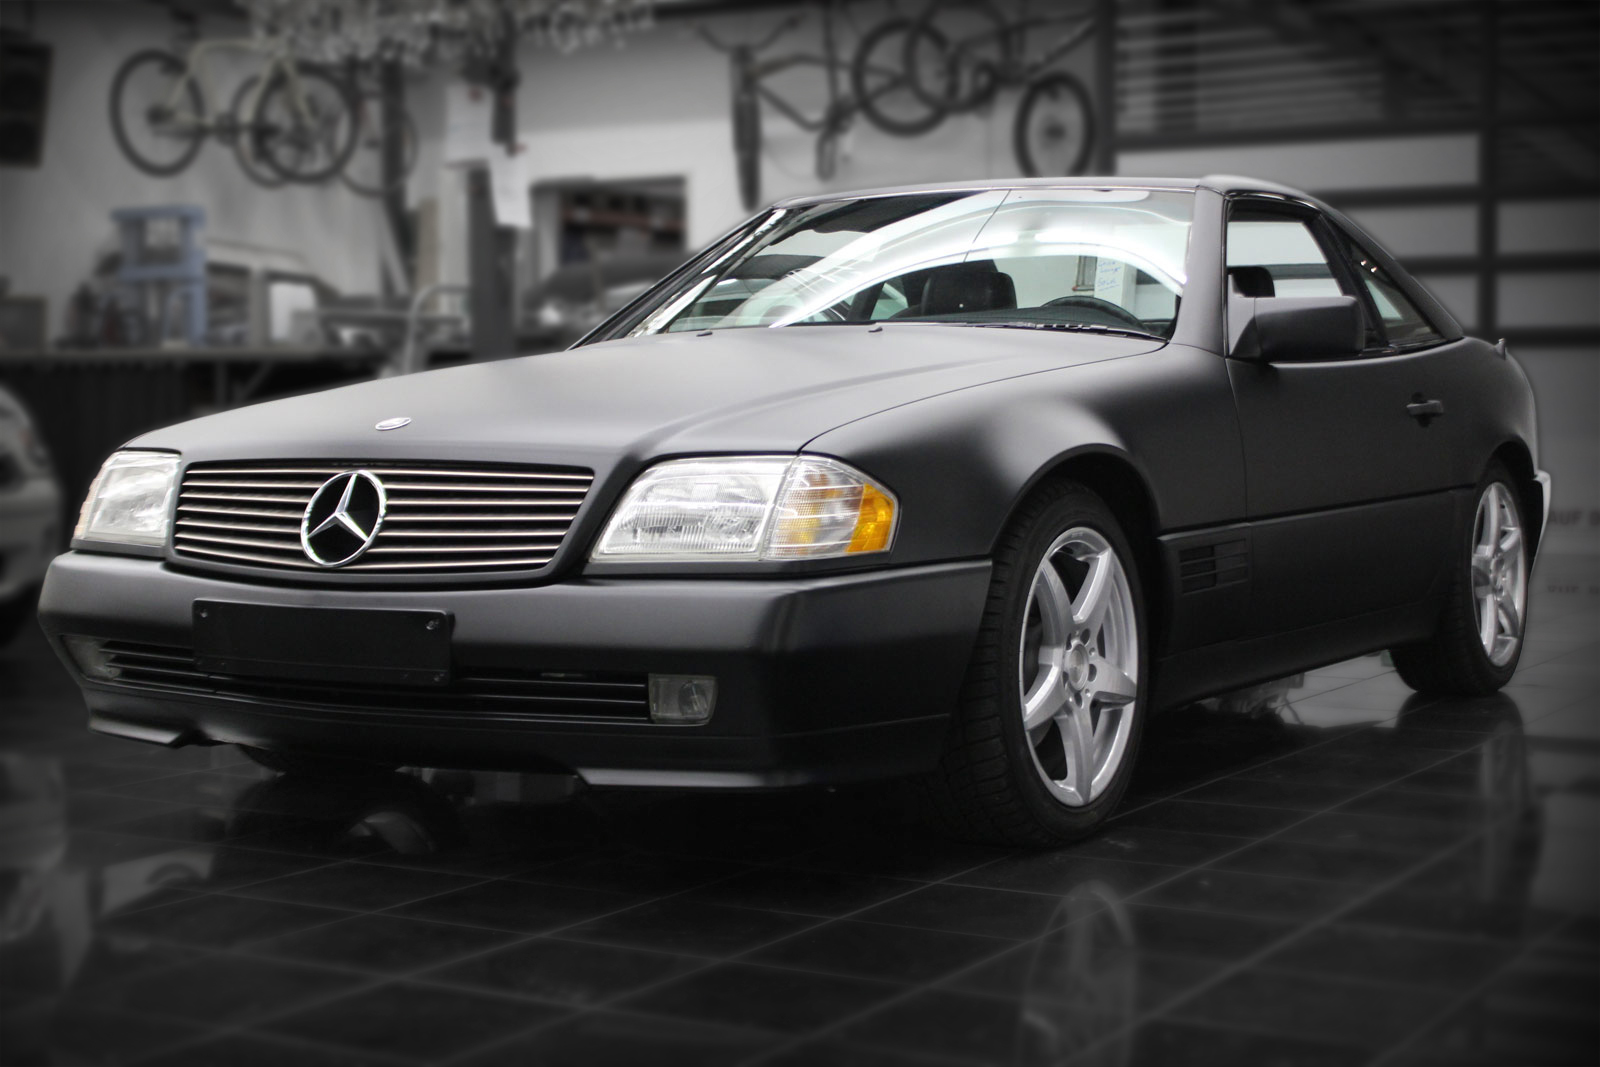 Mercedes SL Folierung in schwarz matt.